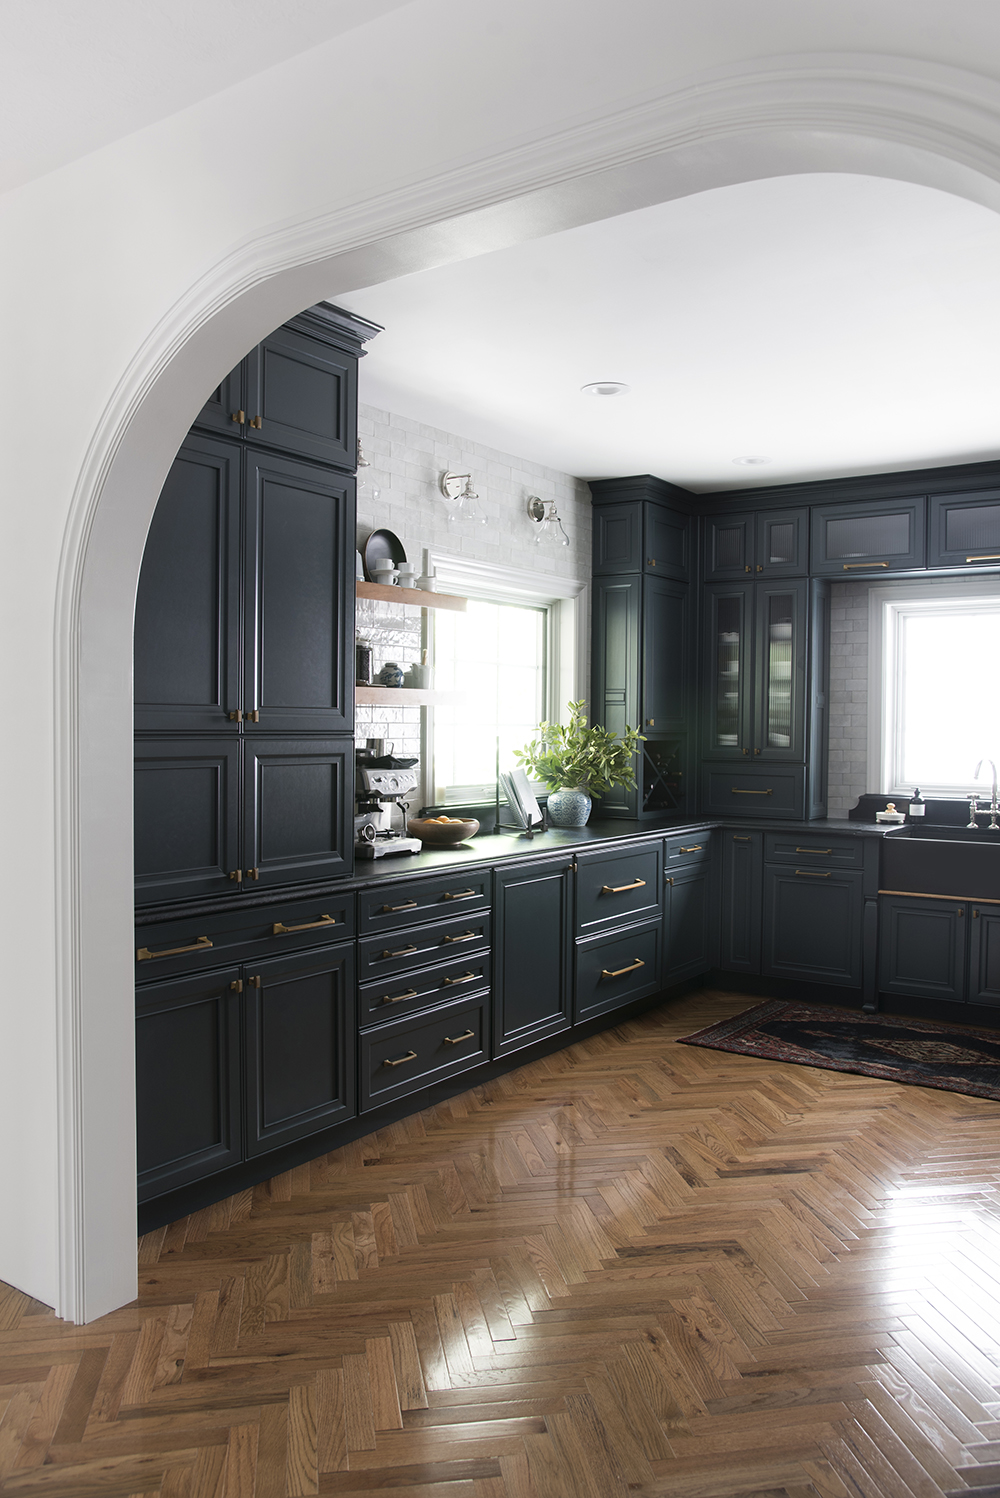 Look for Less : Our Moody Kitchen - roomfortuesday.com